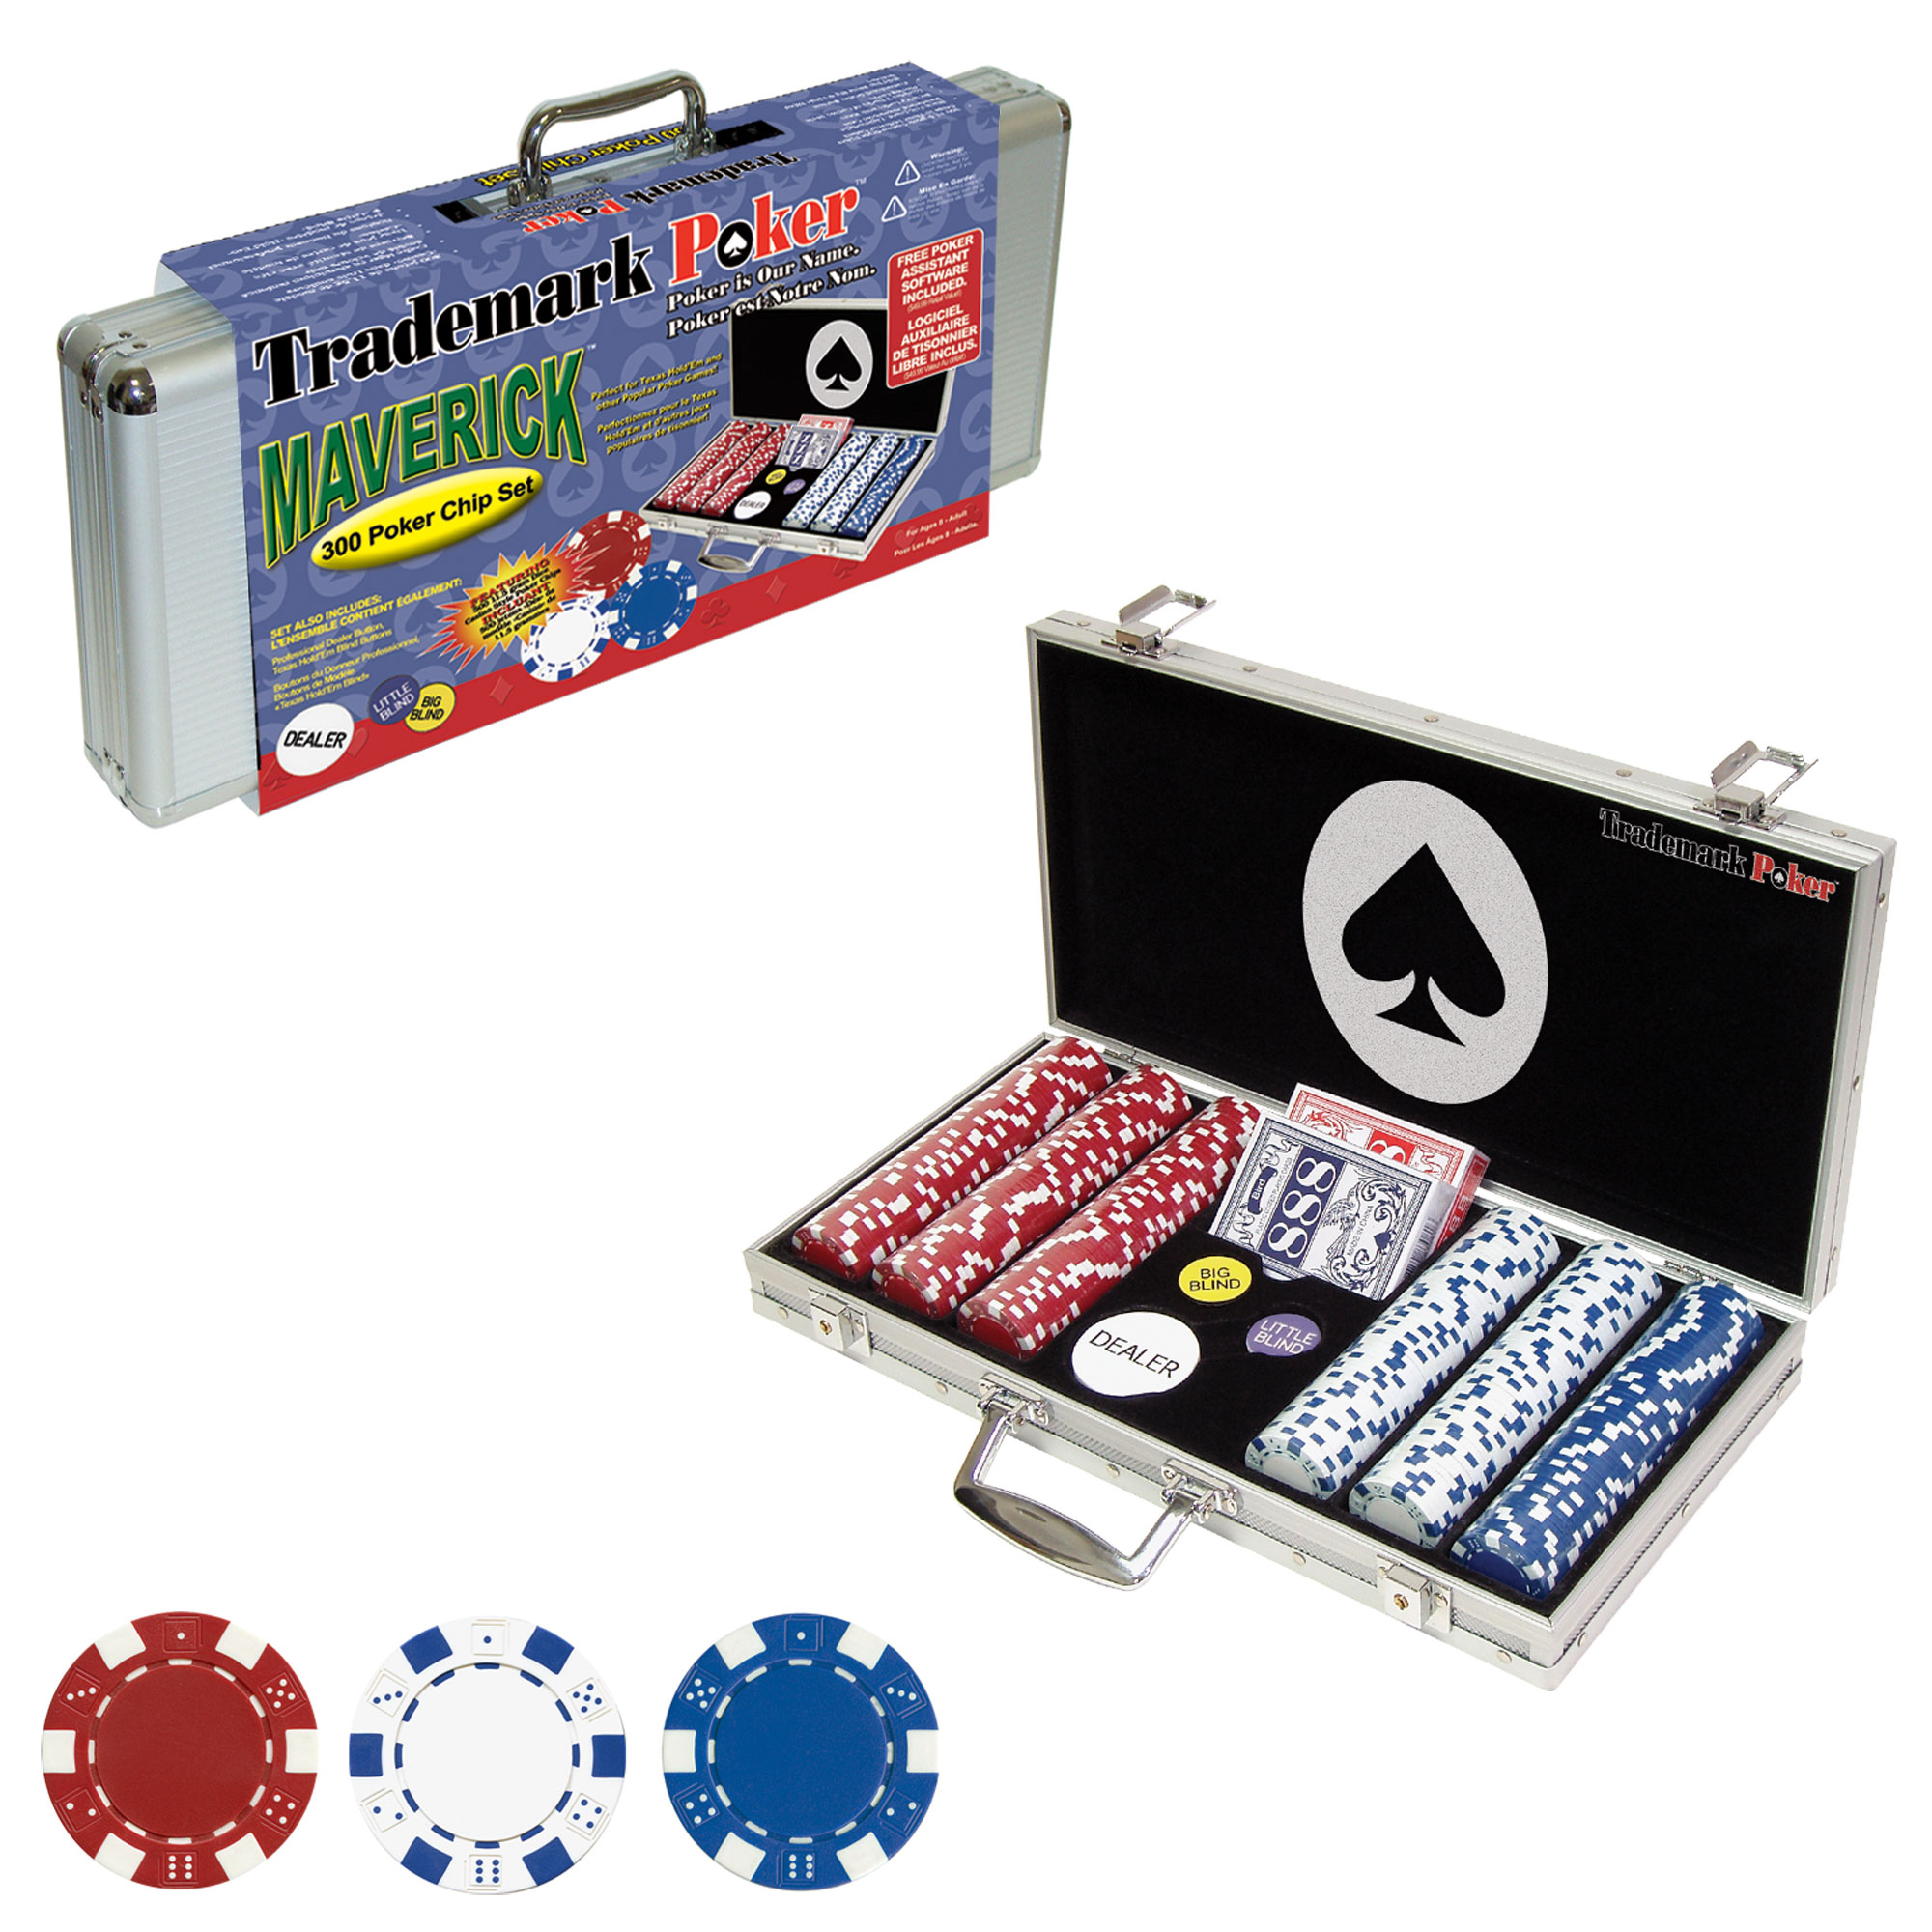 Trademark Poker Maverick 300 Dice Style Poker Chip Set 5690402